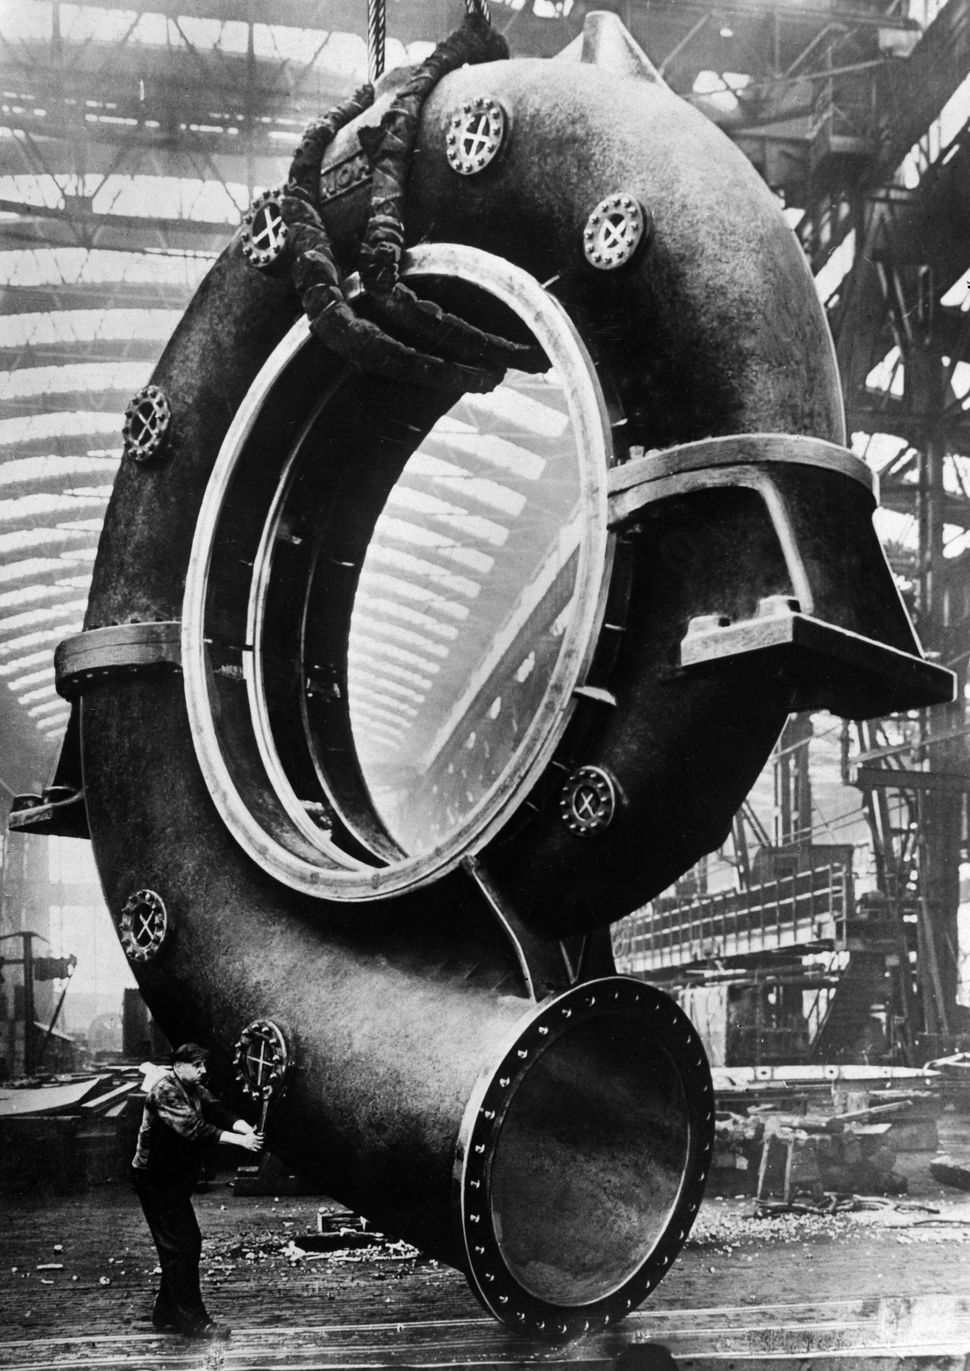 Production of a giant steel volute case for a turbine circa 1930.